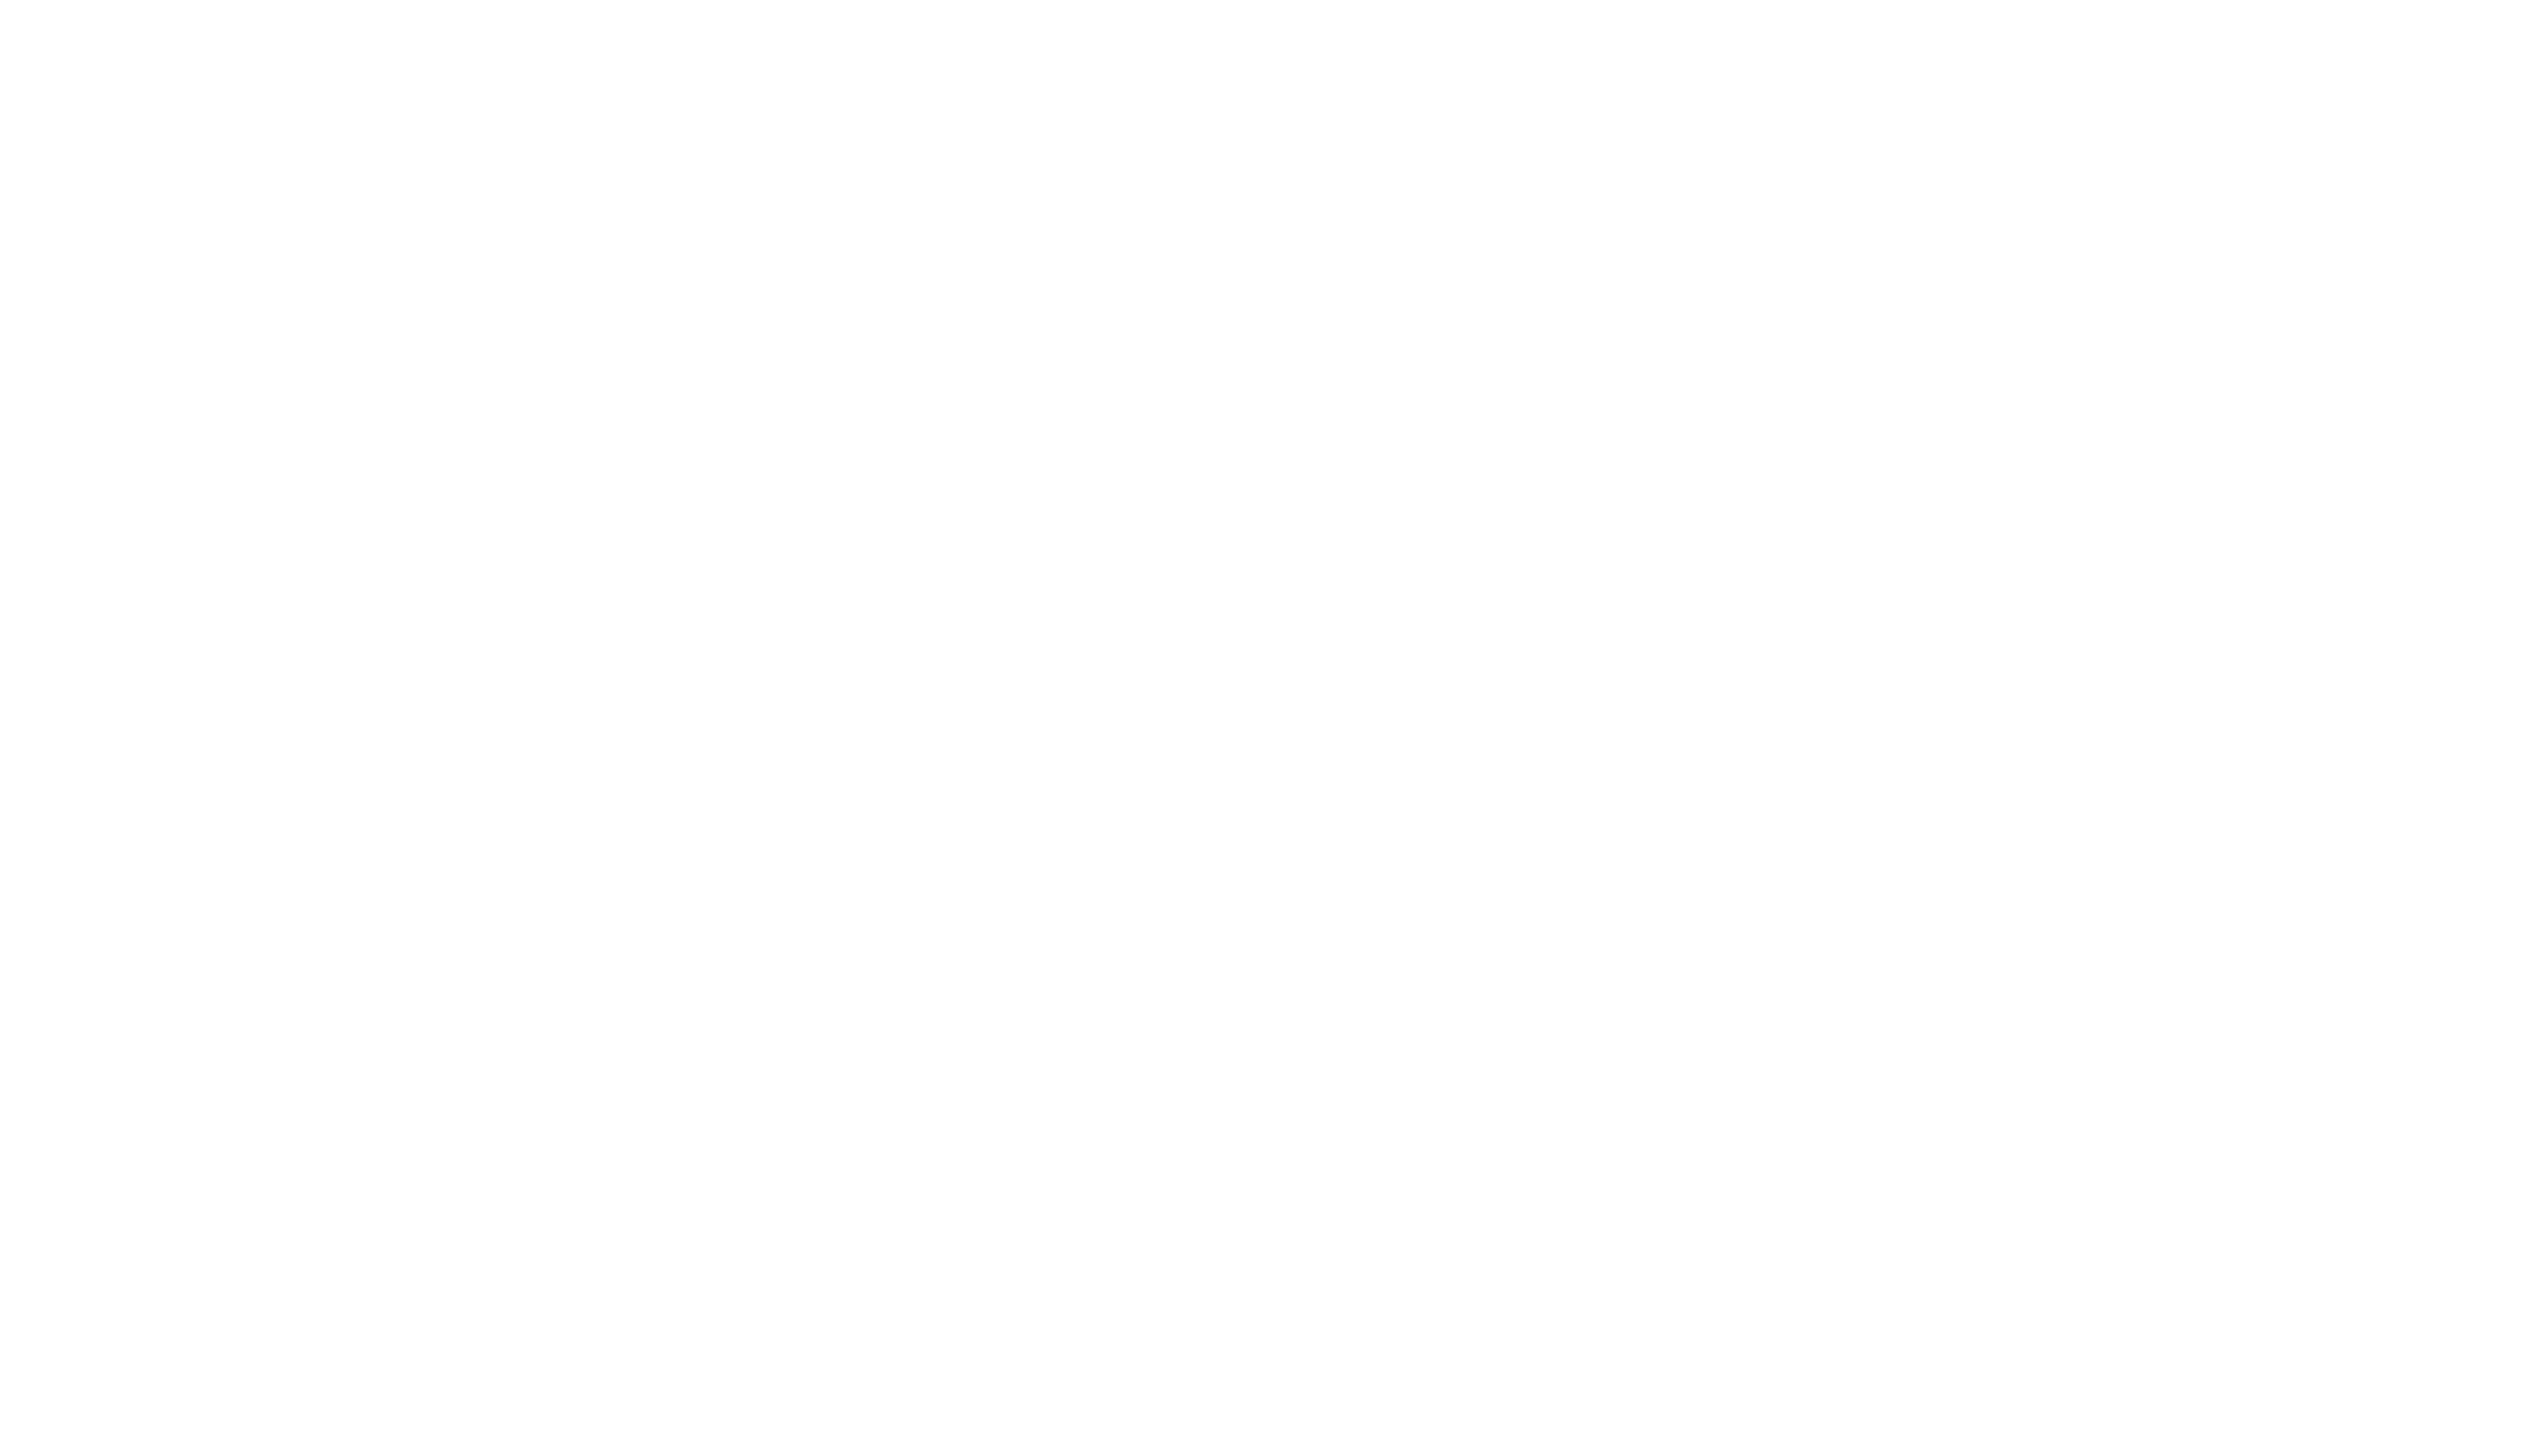 devoted creations logo white